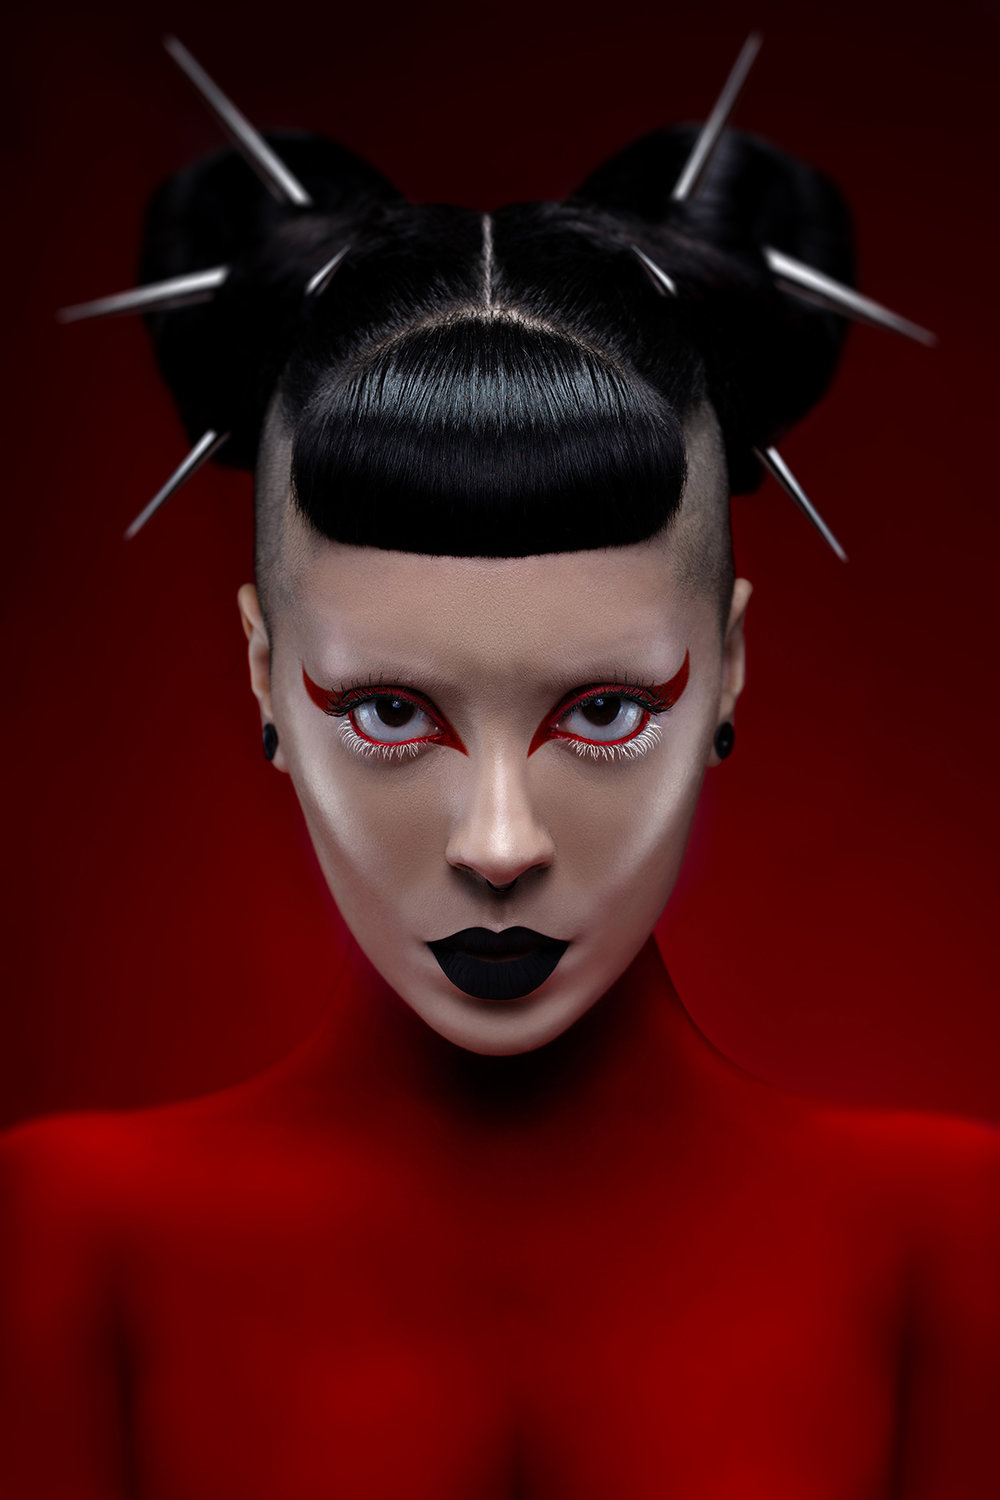 2019 NAHA Makeup Artist of the Year